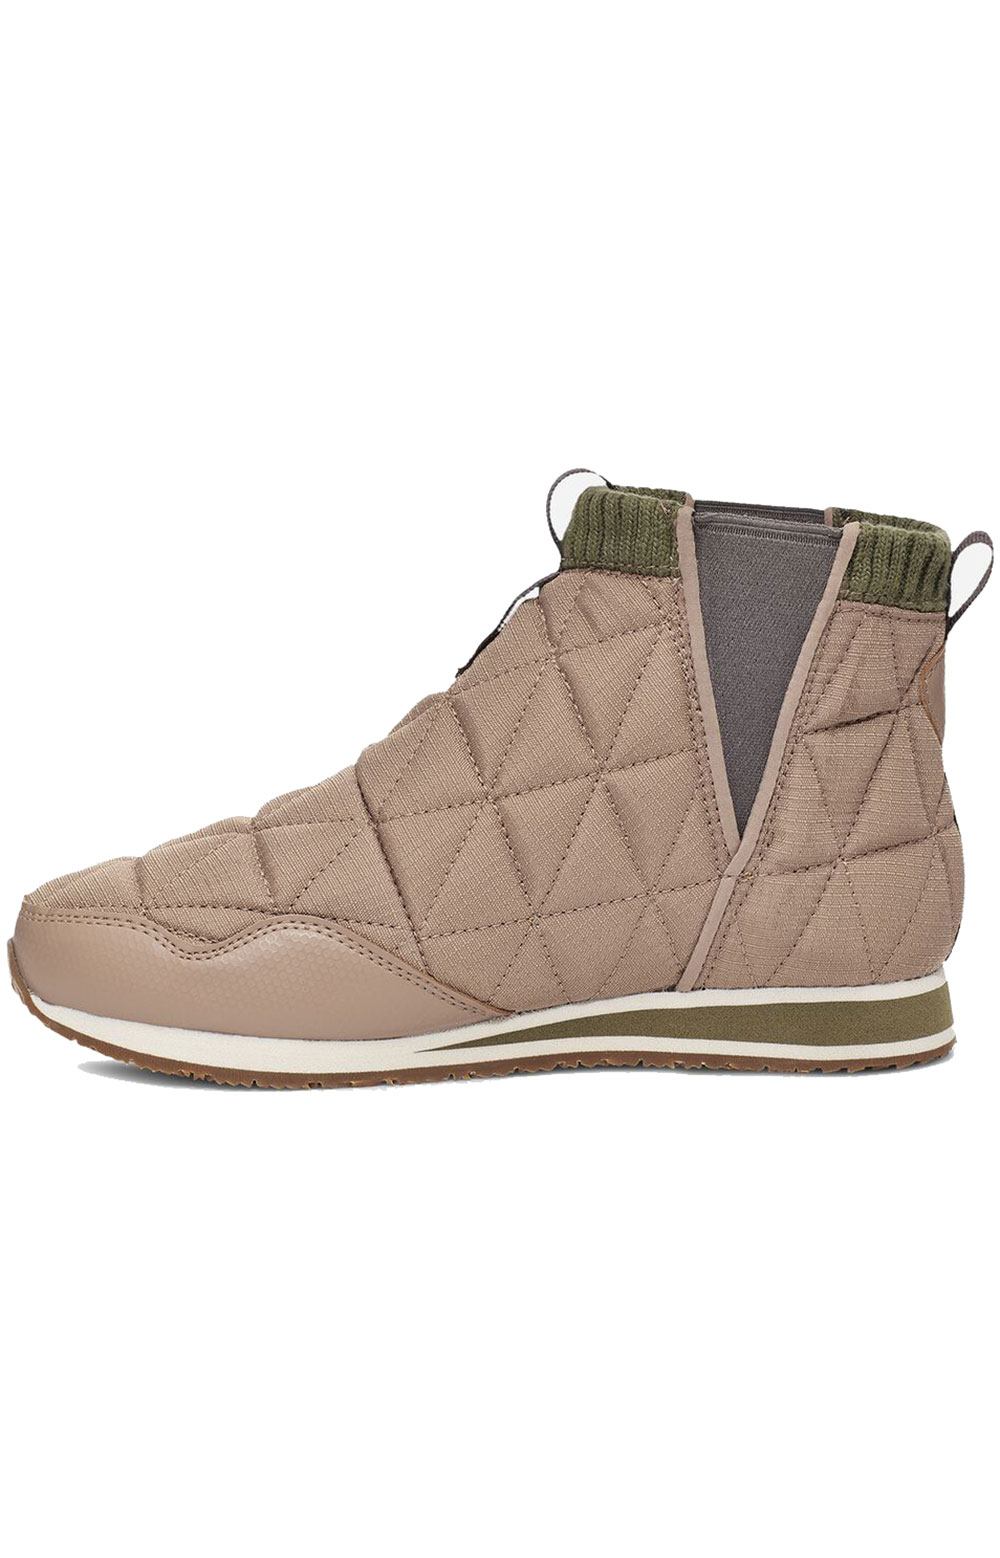 (1123431) ReEMBER Mid Shoes - Macaroon/Olive 3